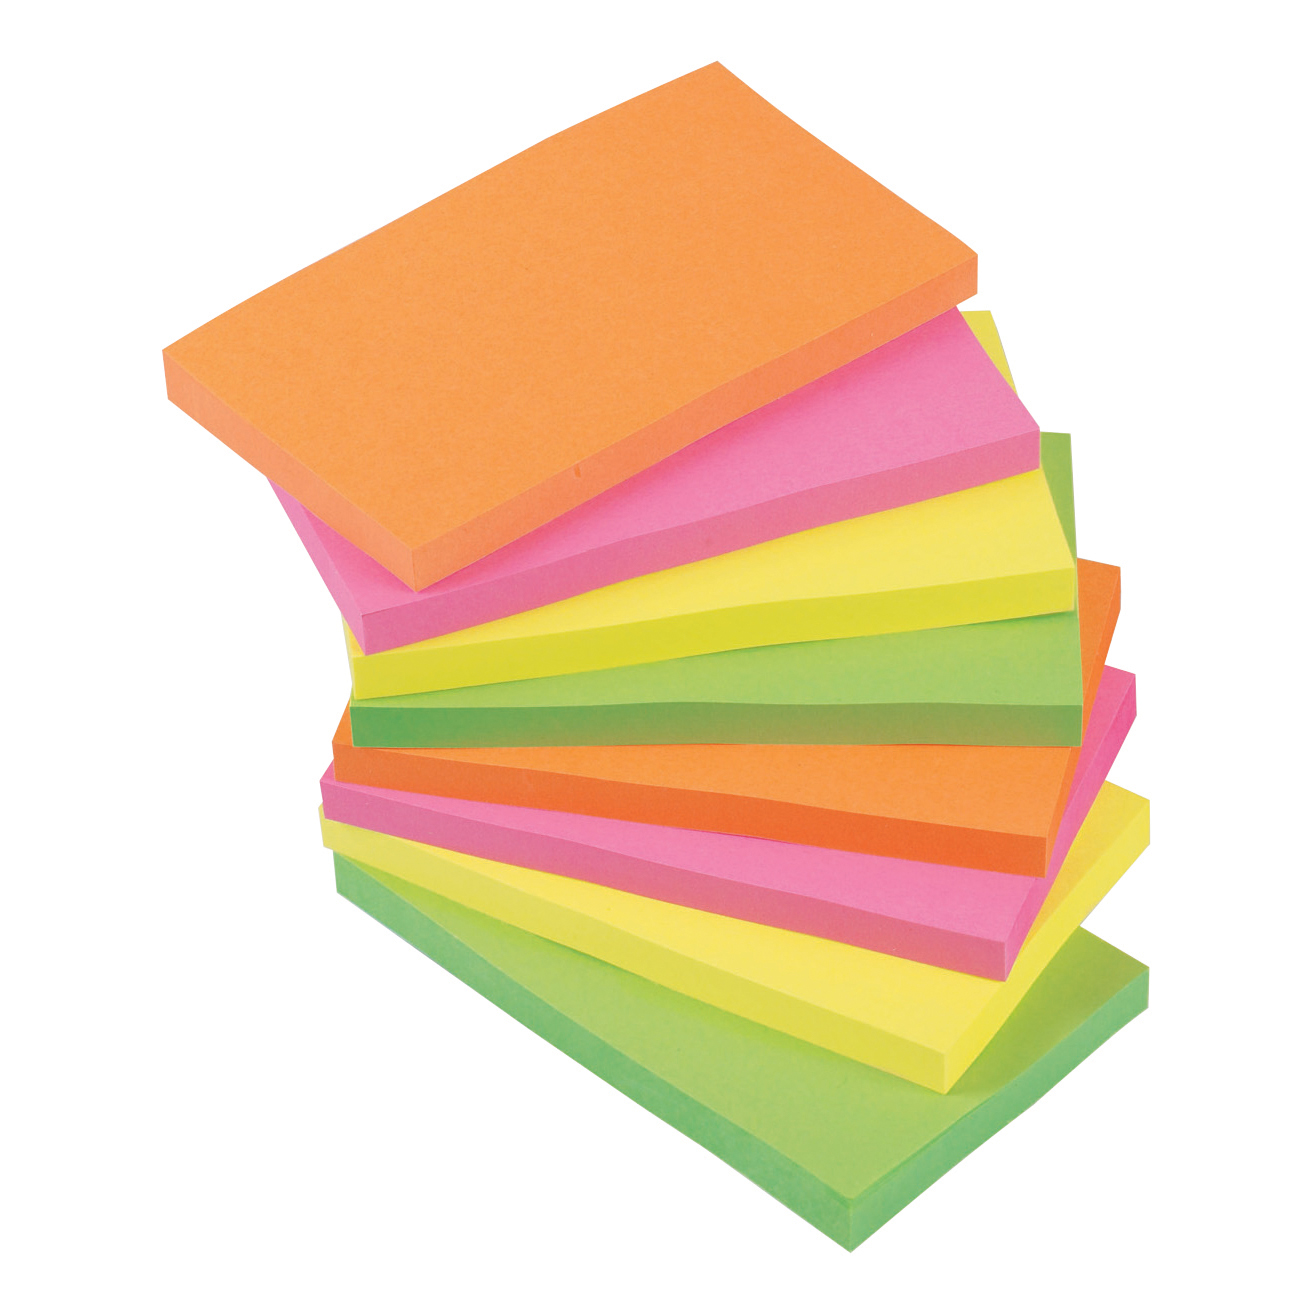 Coloured 5 Star Office Re-Move Notes Repositionable Neon Pad of 100 Sheets 76x127mm Assorted Pack 12